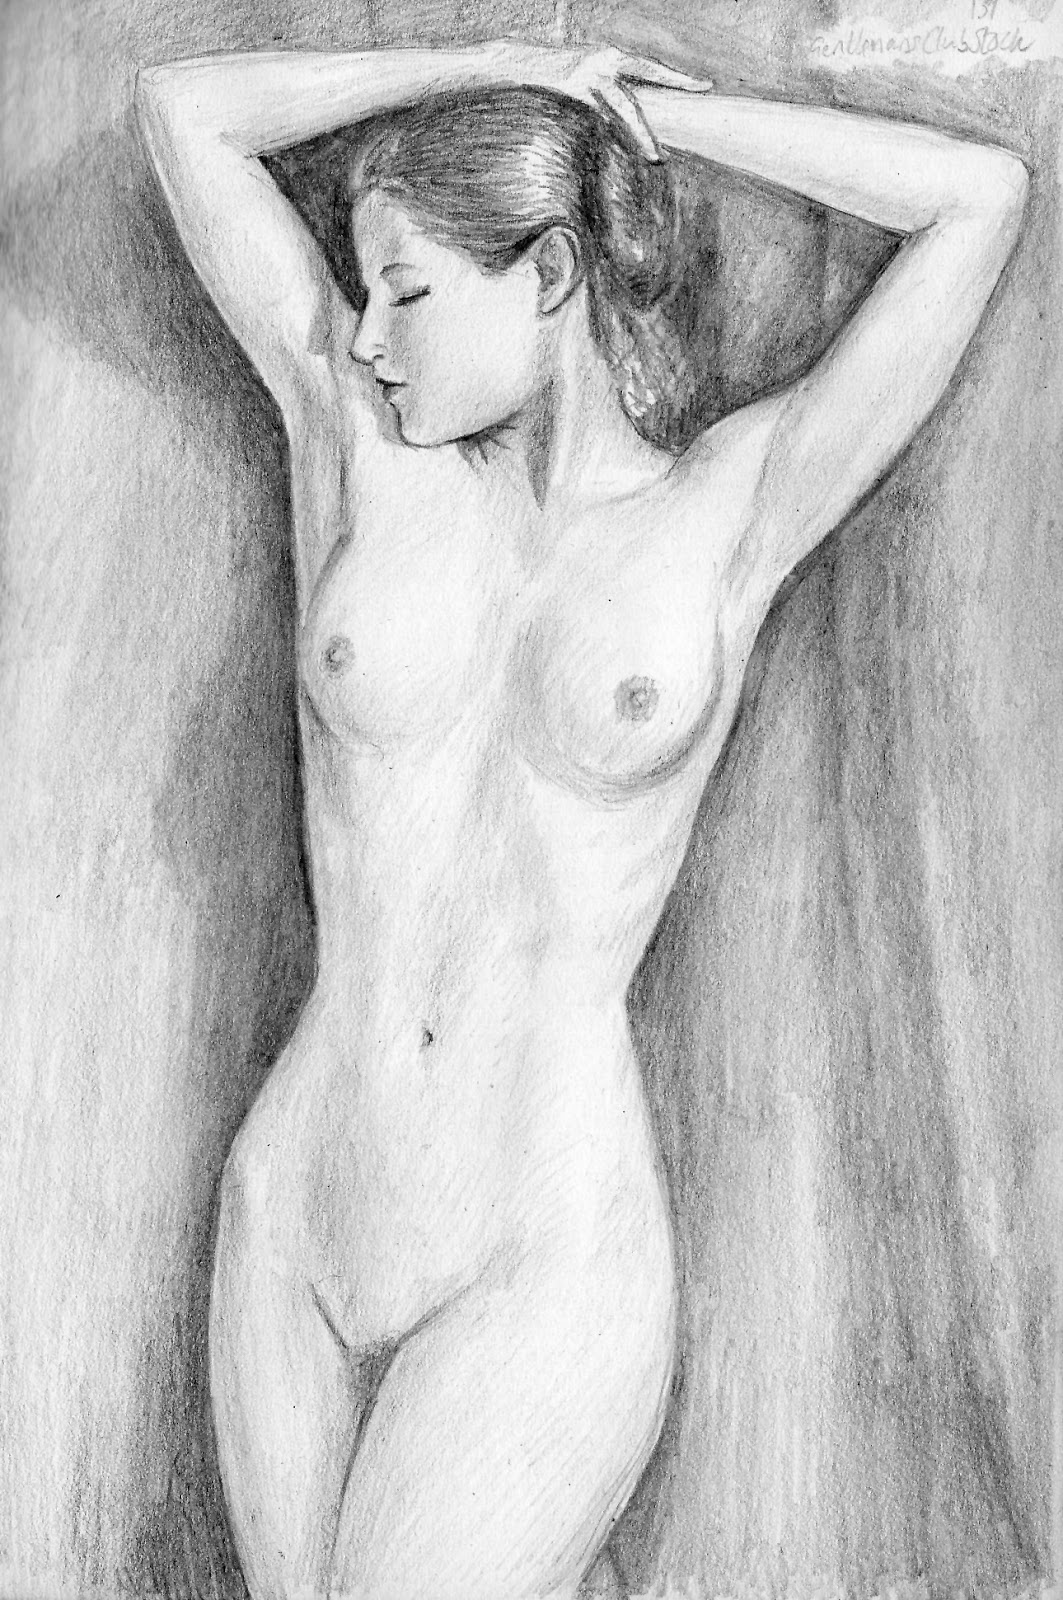 Nude fuck arts drawn by pencil pron download